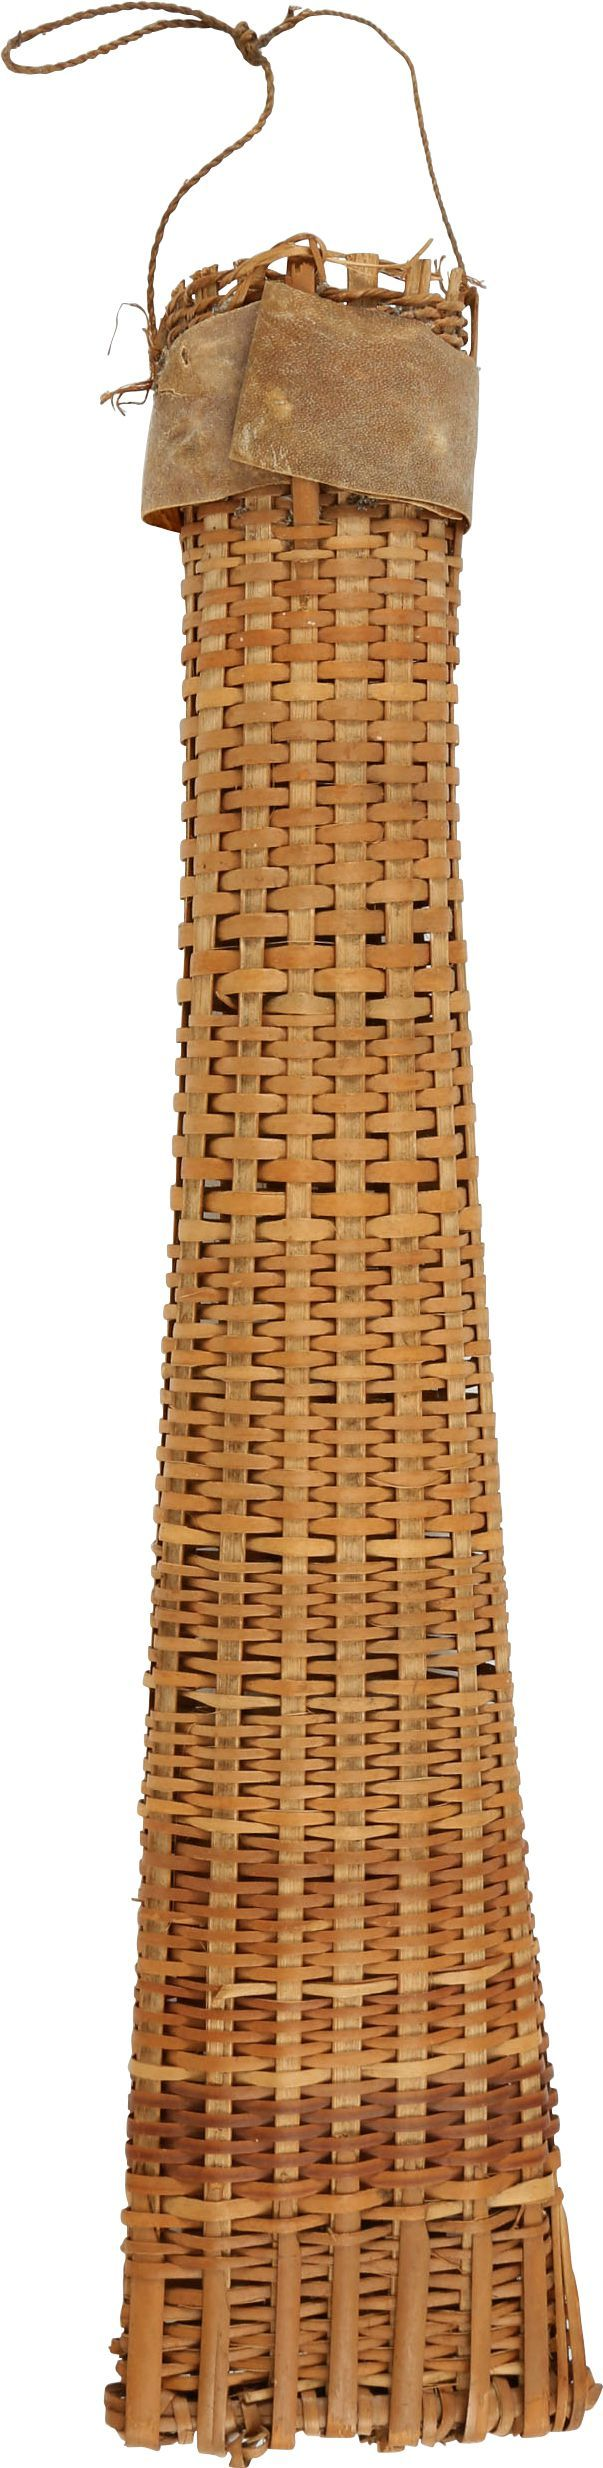 Ifugao Headhunters Quiver - Product